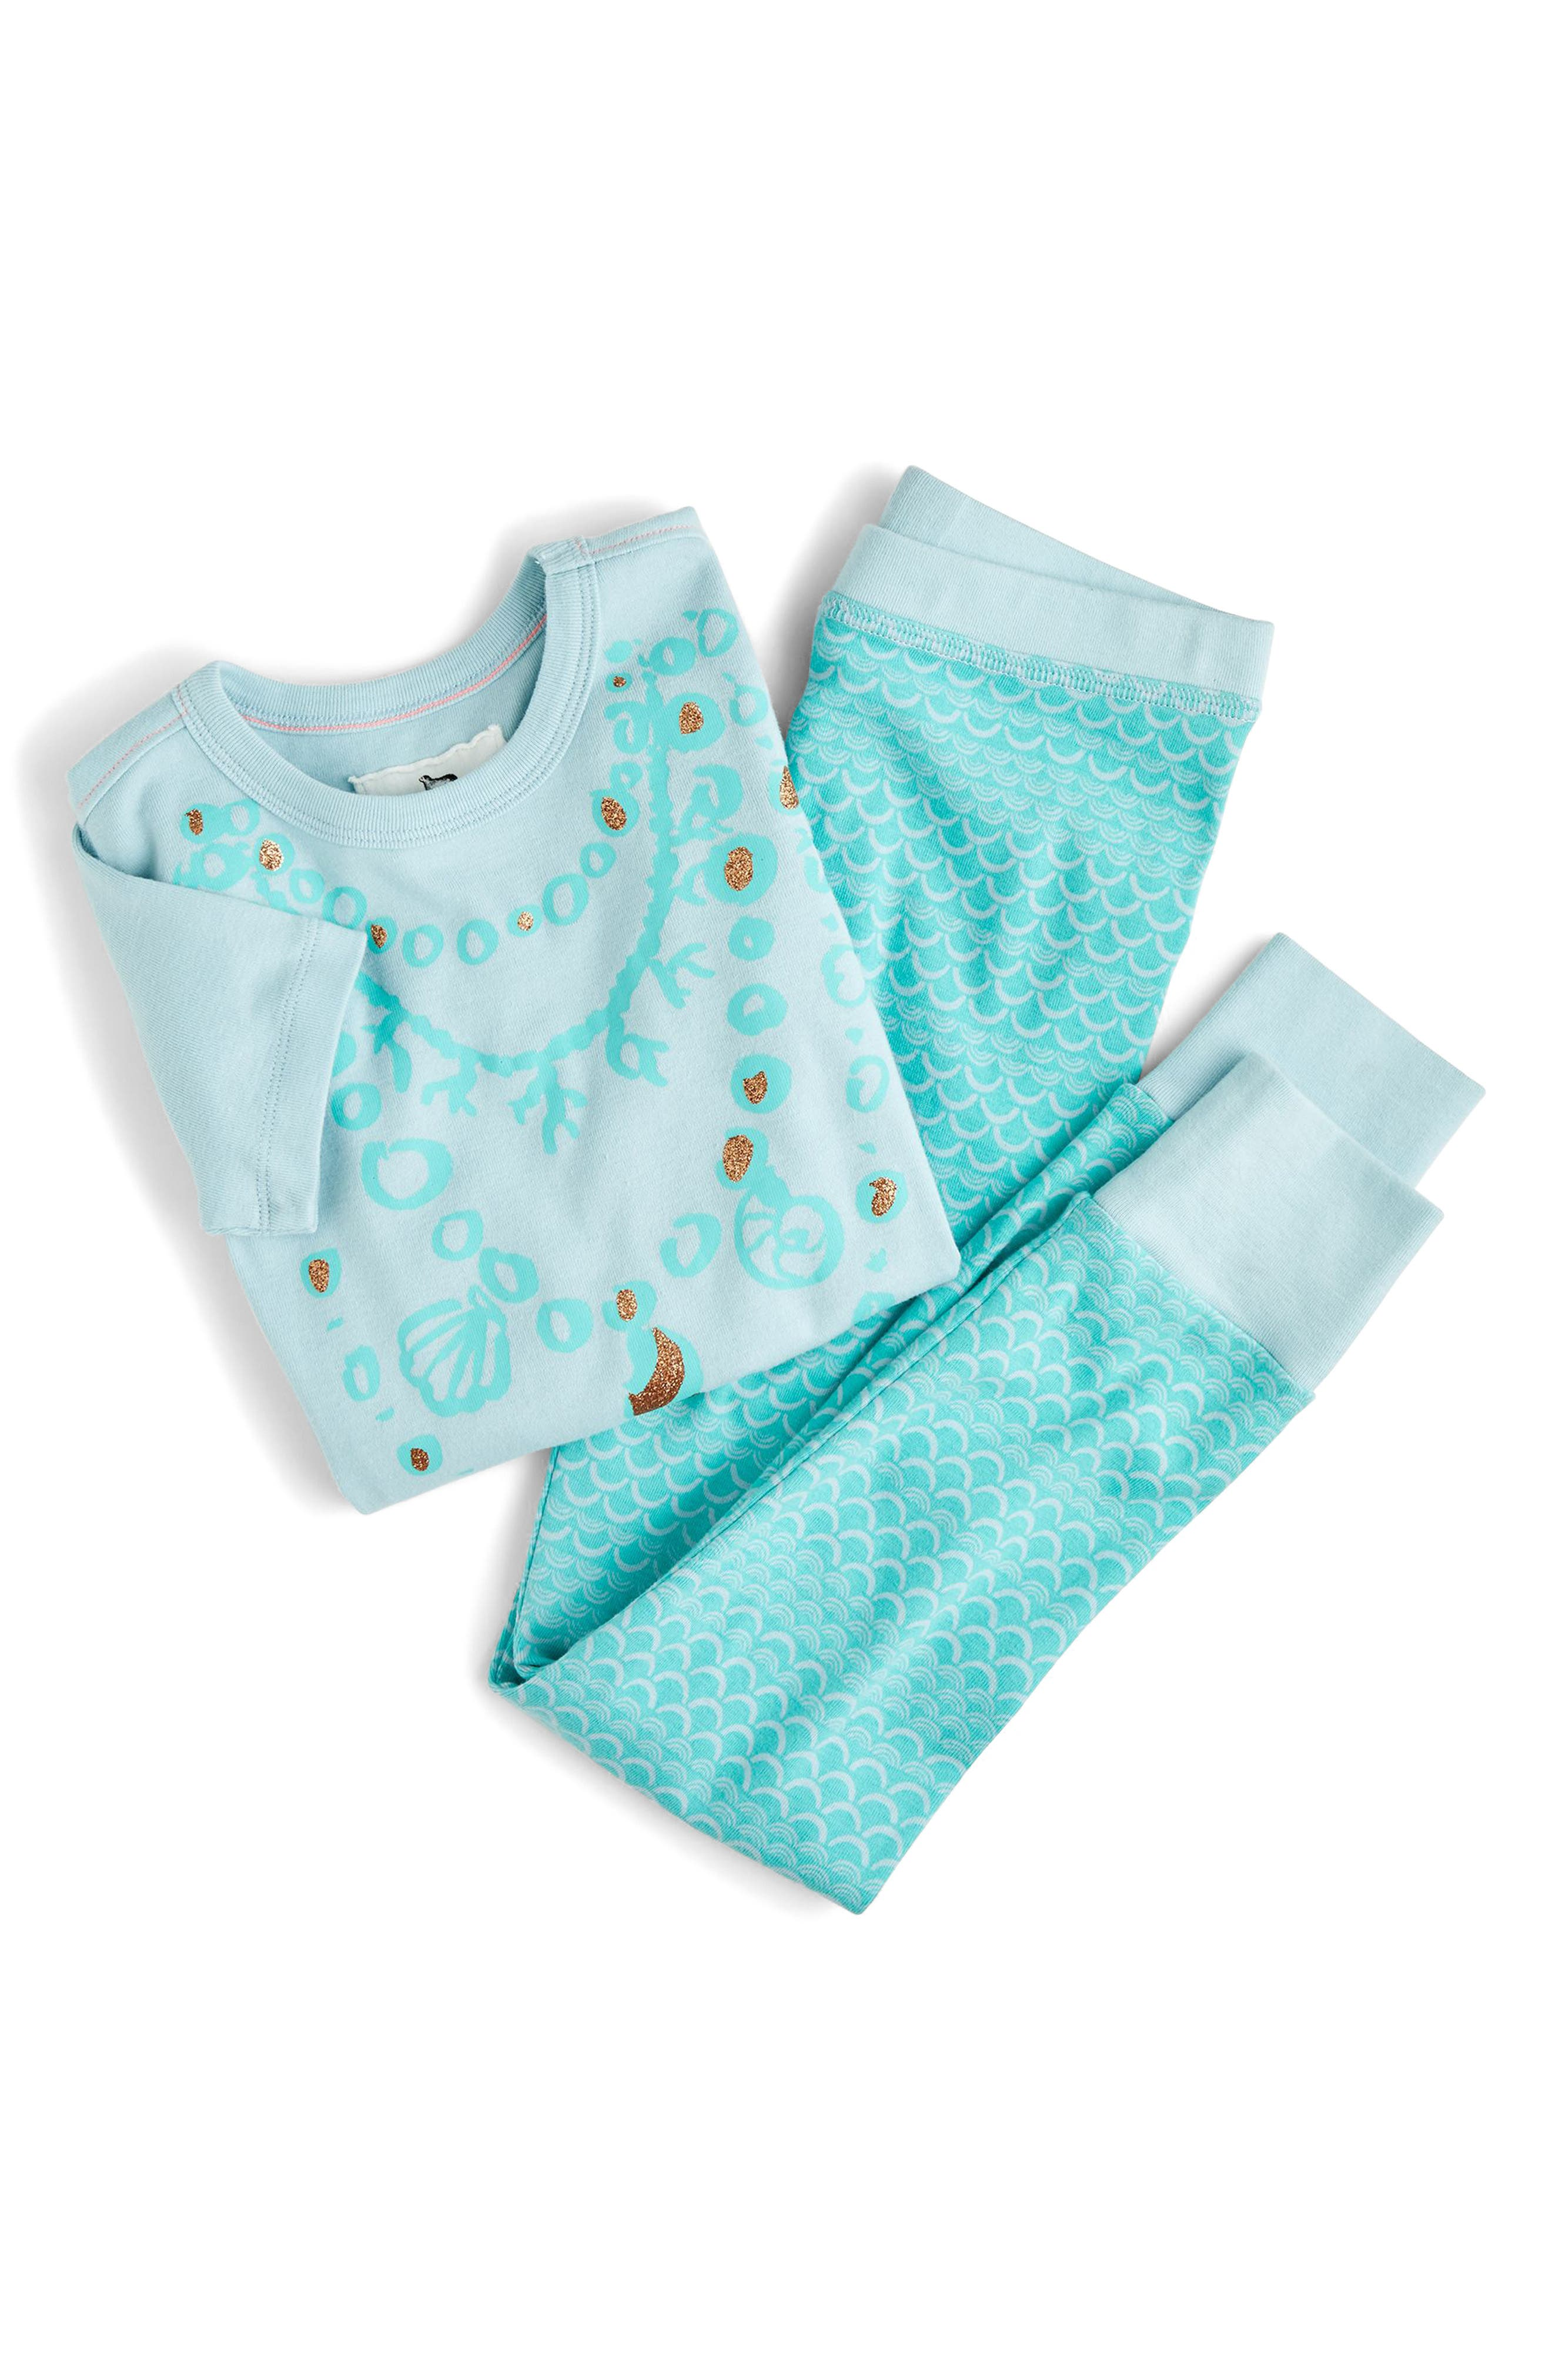 crewcuts by J. Crew Mermaid Fitted Two-Piece Pajamas (Toddler Girls, Little Girls & Big Girls)